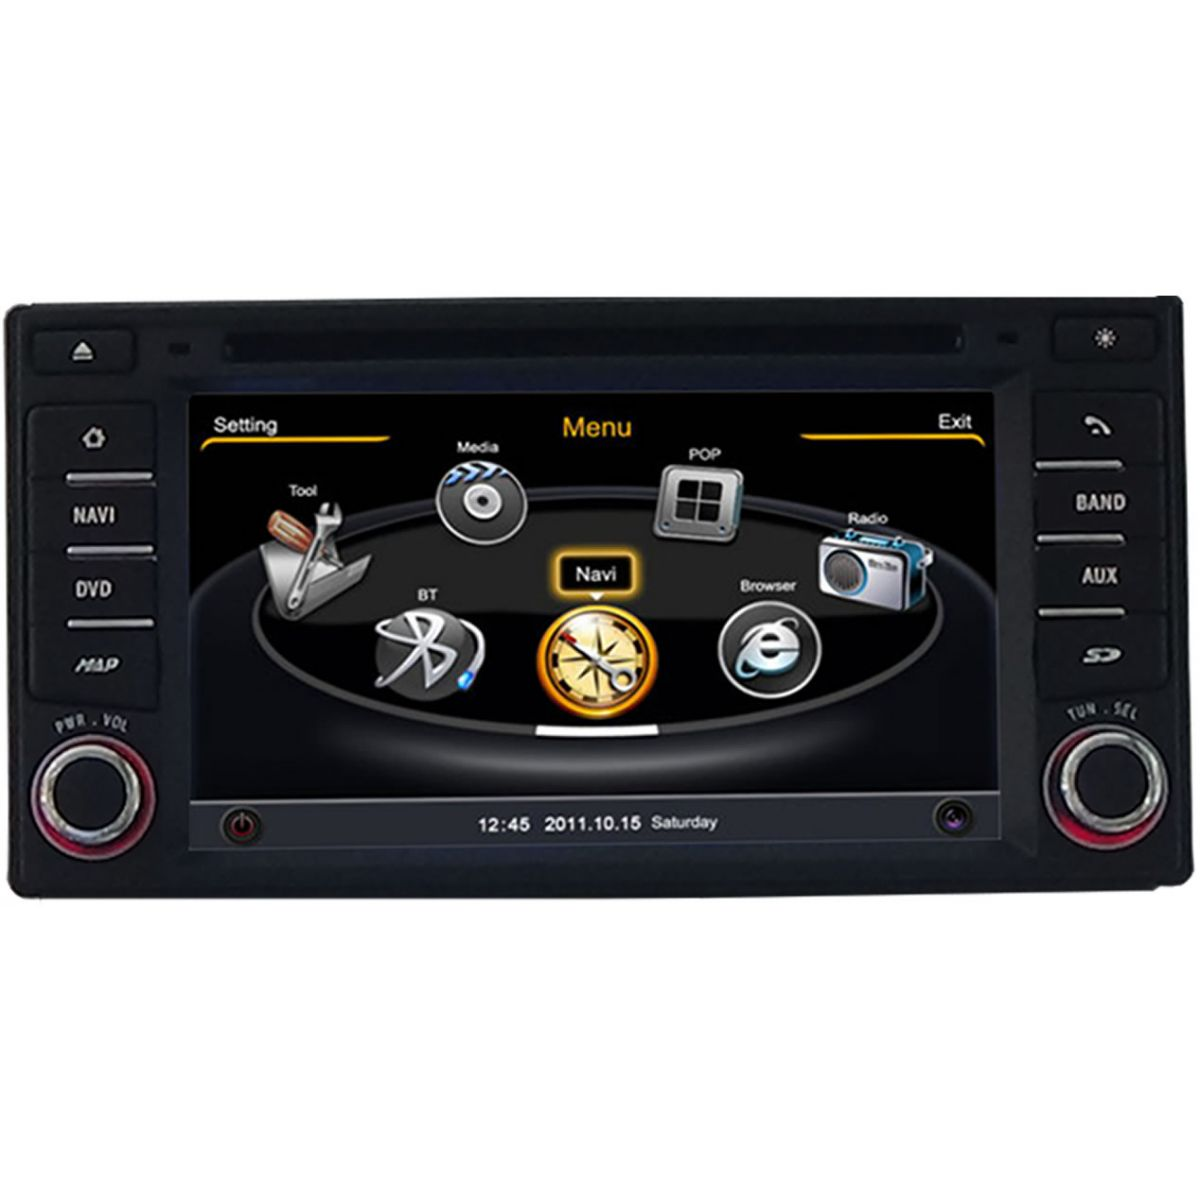 Central Multimidia Nissan March 2014 á 2018   e  Versa 2015 2017 2018  Com DVD GPS Mapa Bluetooth MP3 USB Ipod SD Card Câmera Ré Grátis - Preta - Winca